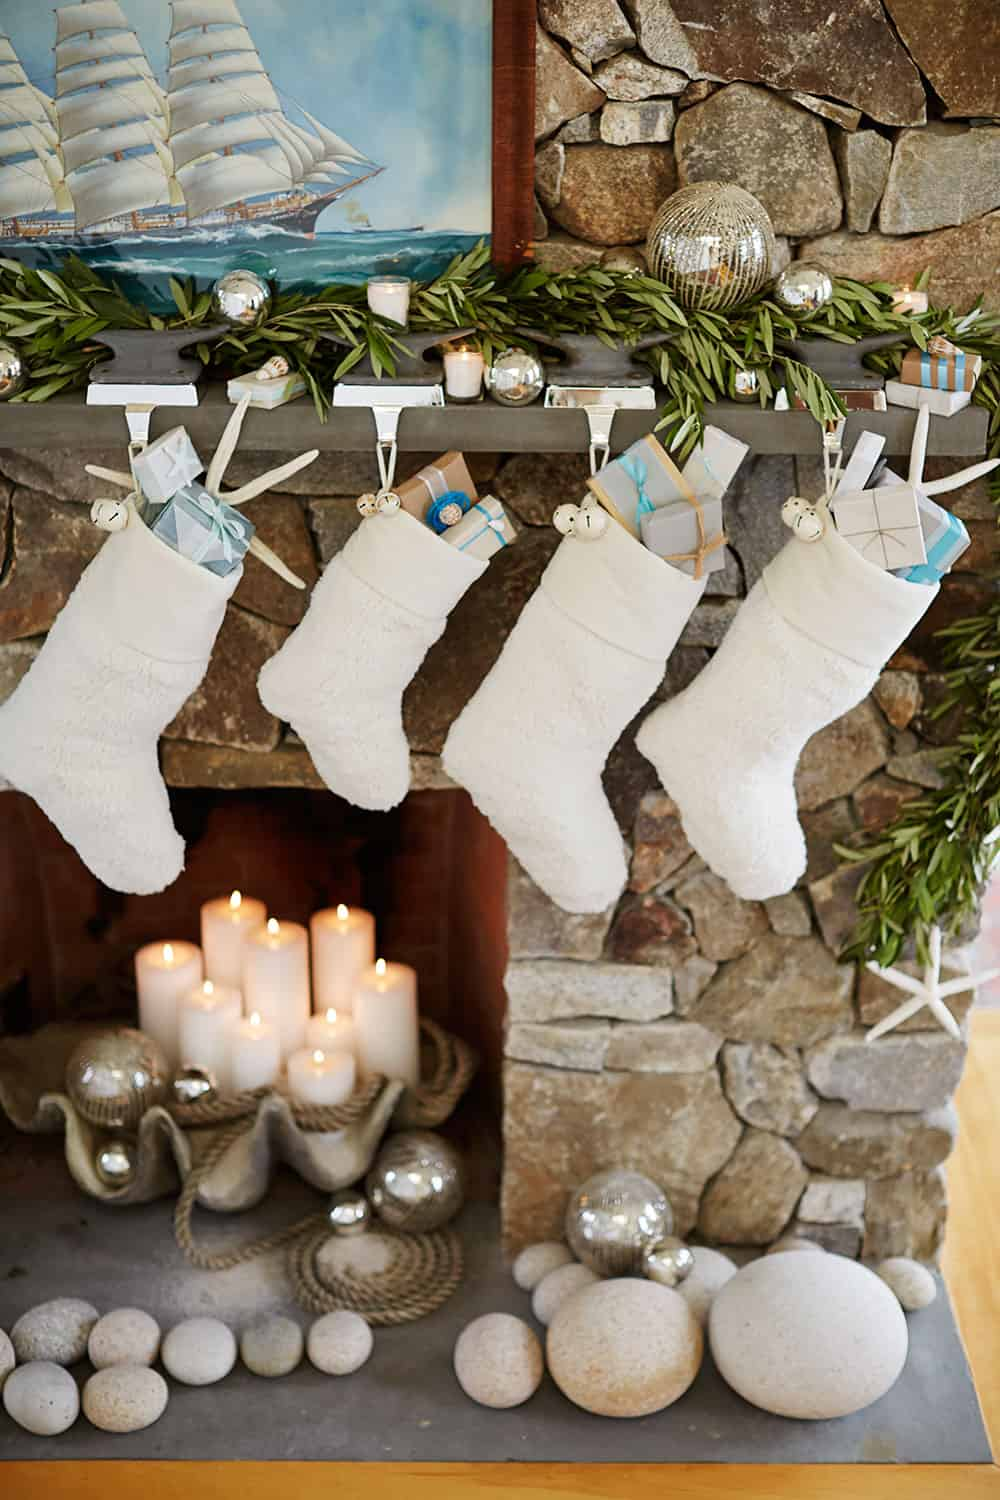 Christmas Mantel Decorating Ideas-45-1 Kindesign